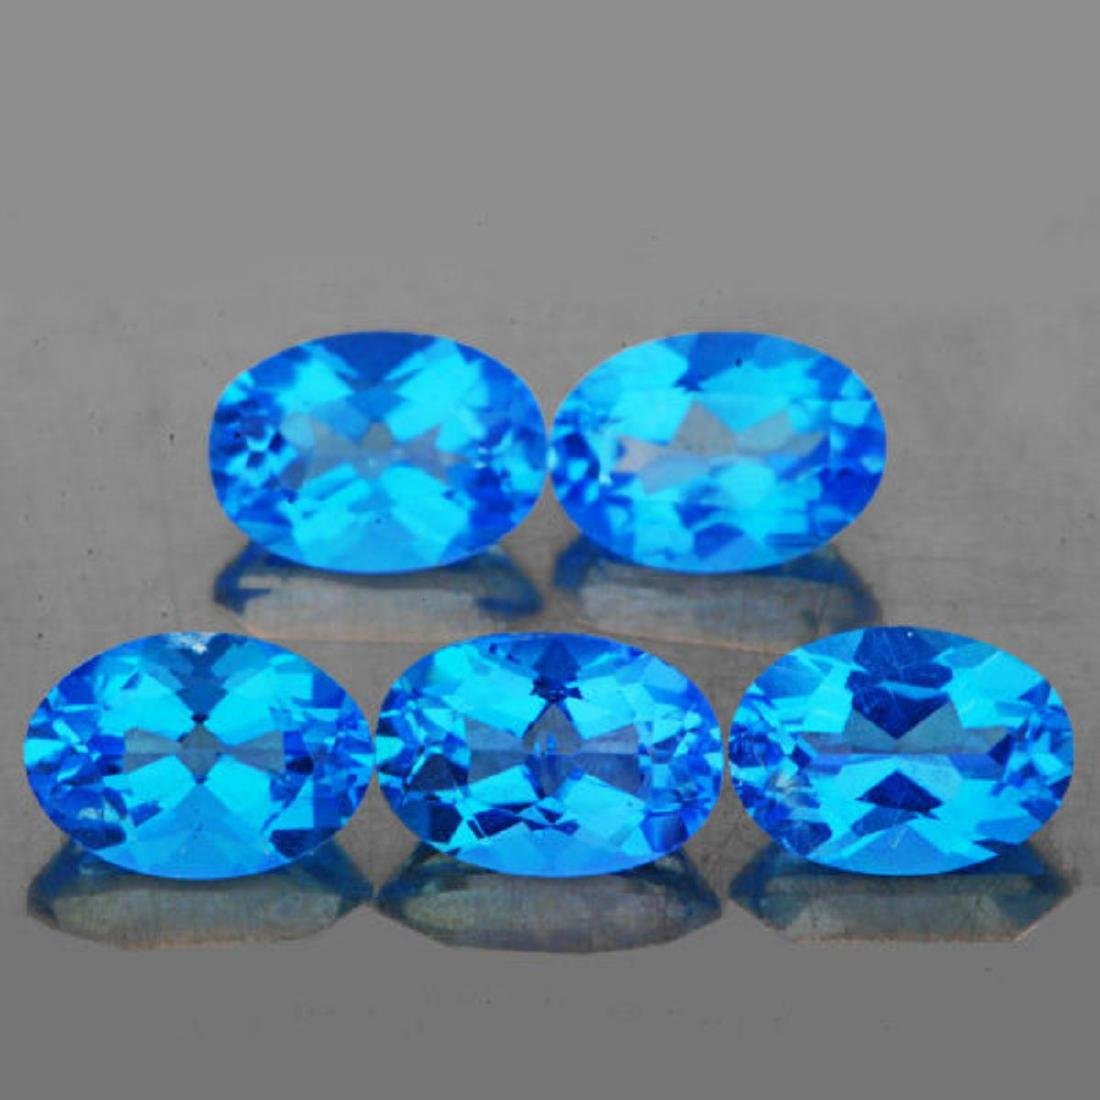 Natural Swiss Blue Topaz 4.53 Cts (Flawless-VVS1)